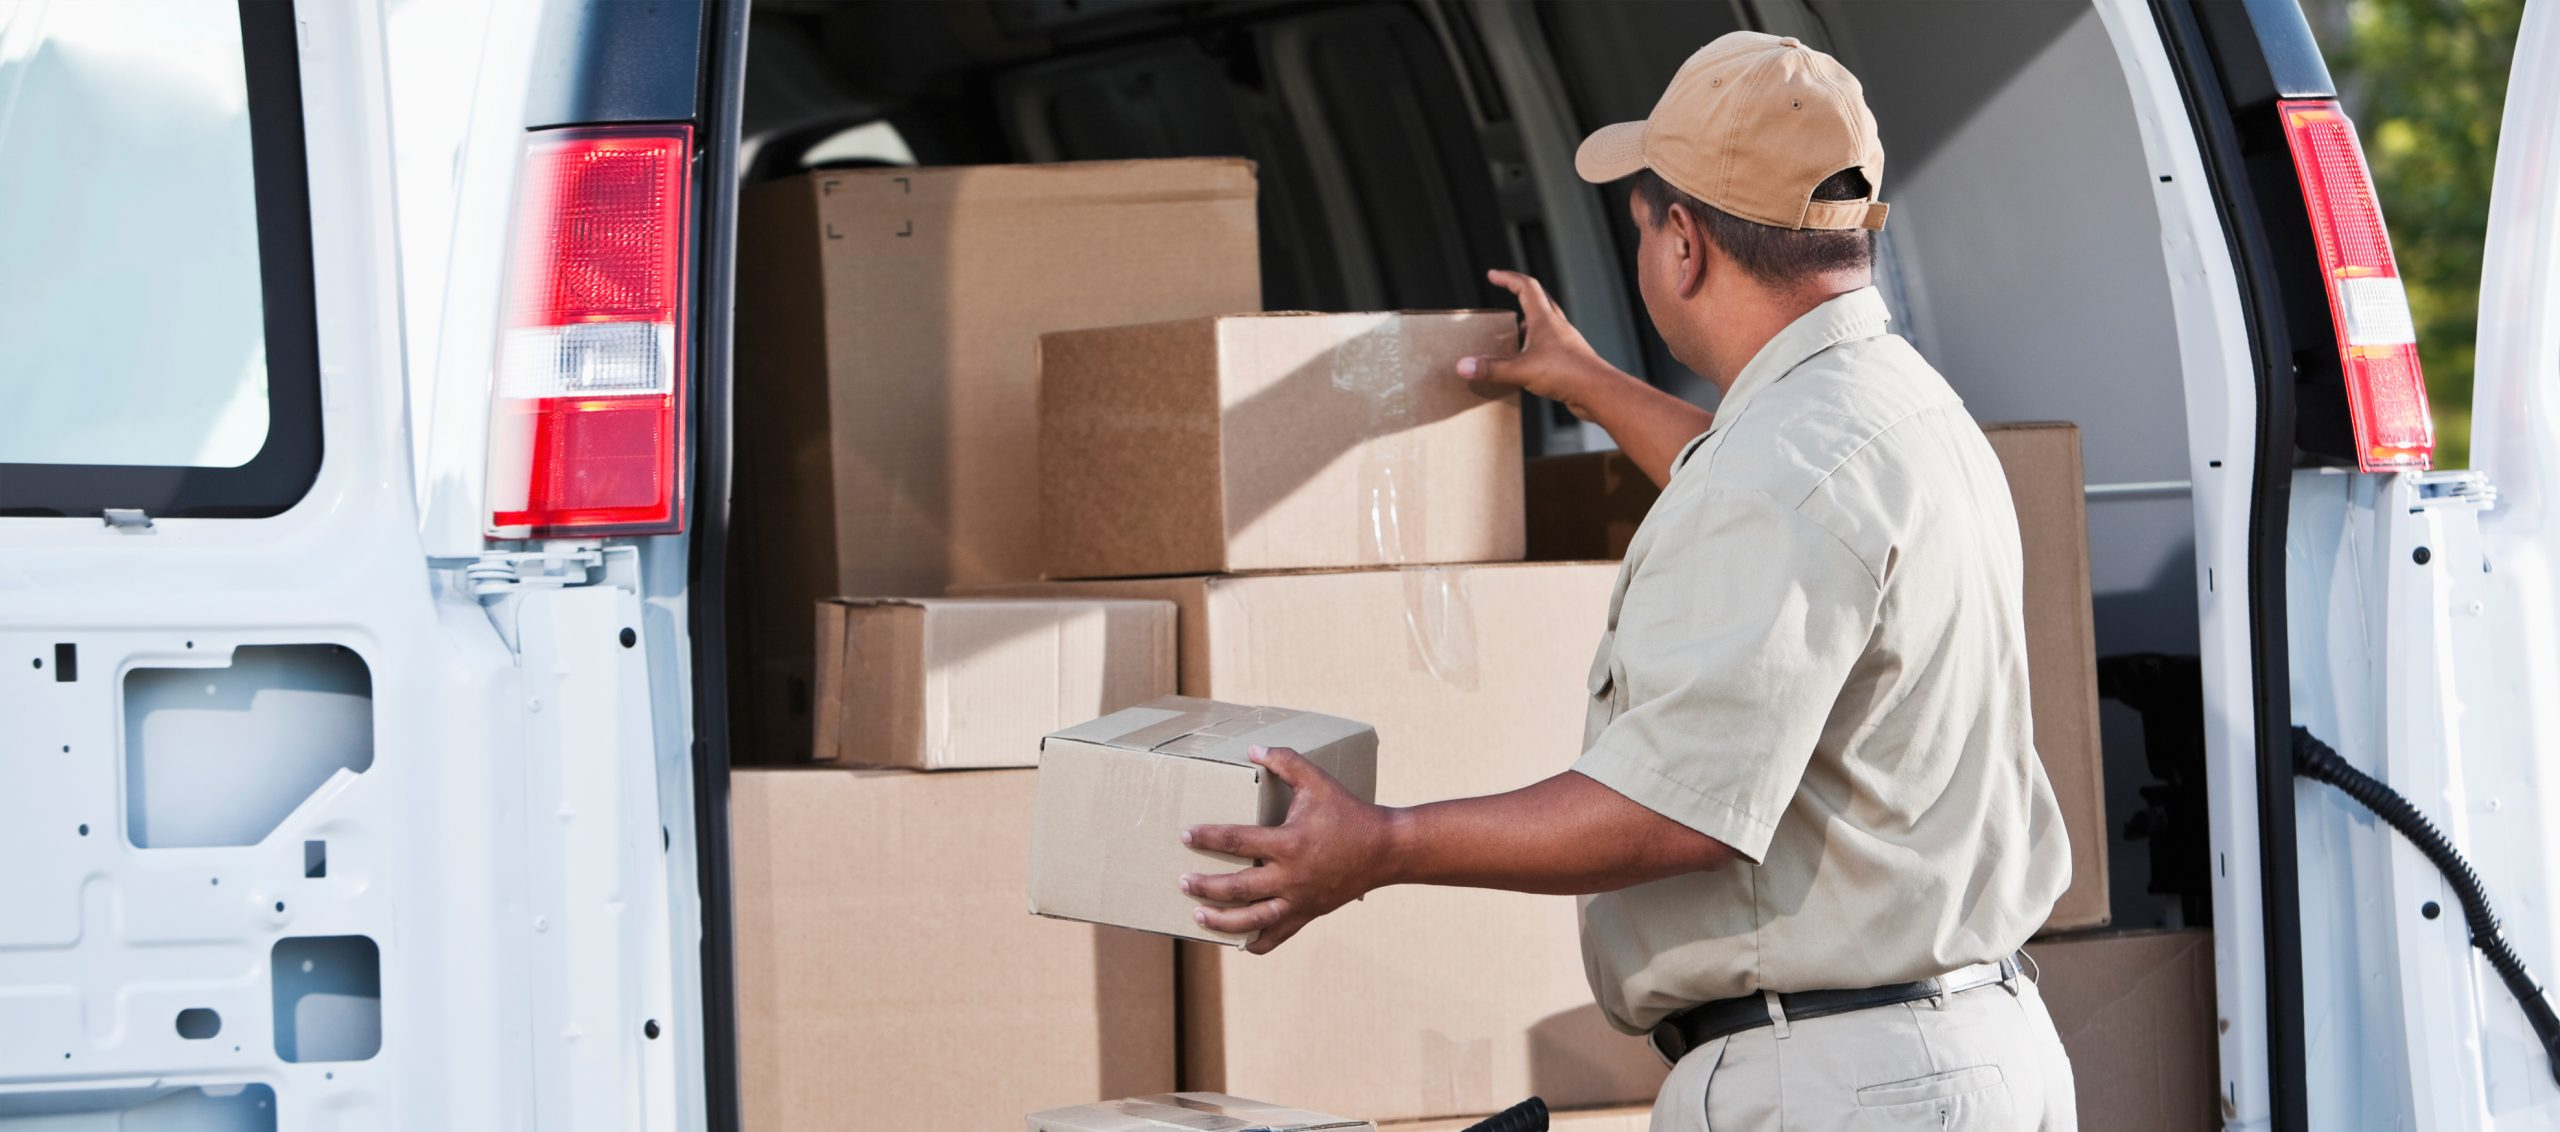 How parcel locker content detection technology will help postal operators manage parcels